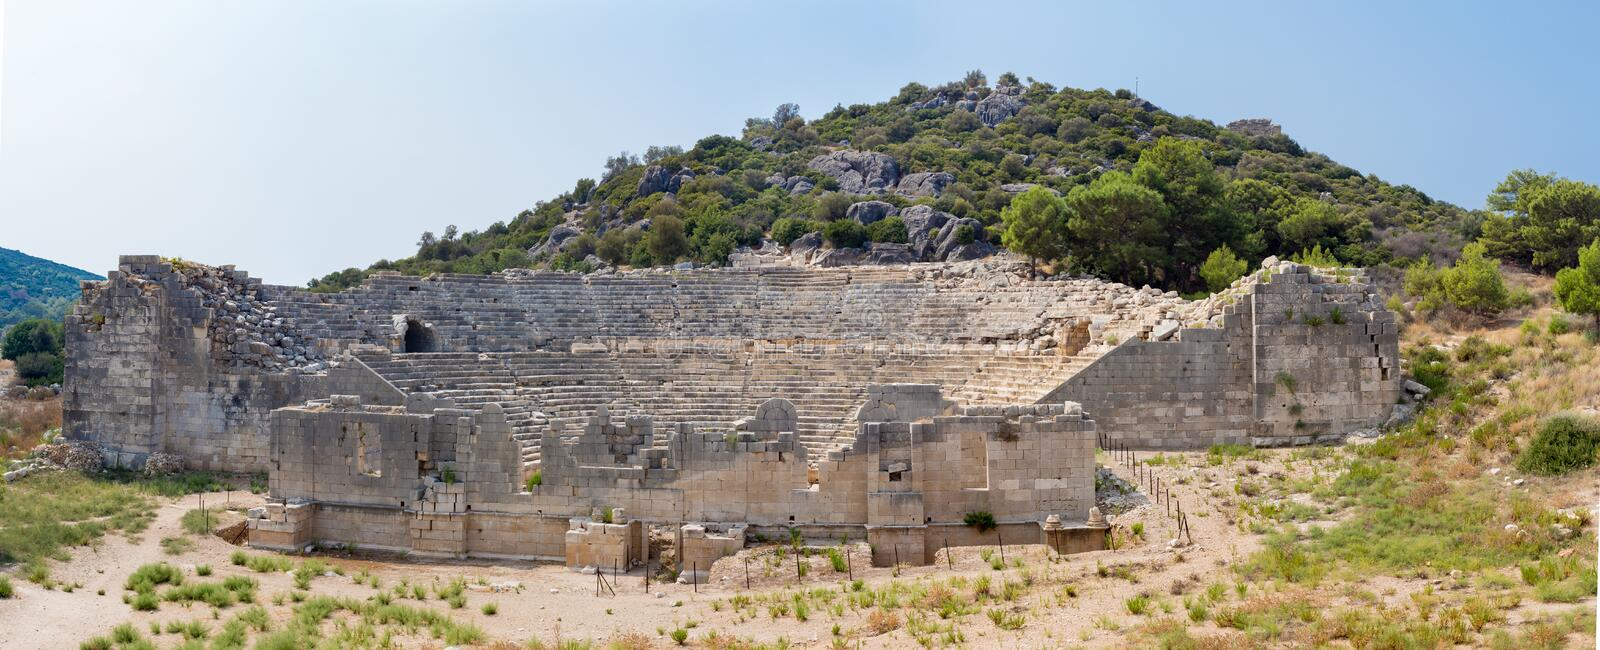 Ruin of amphitheater in ancient Lycian city Patara stock photo